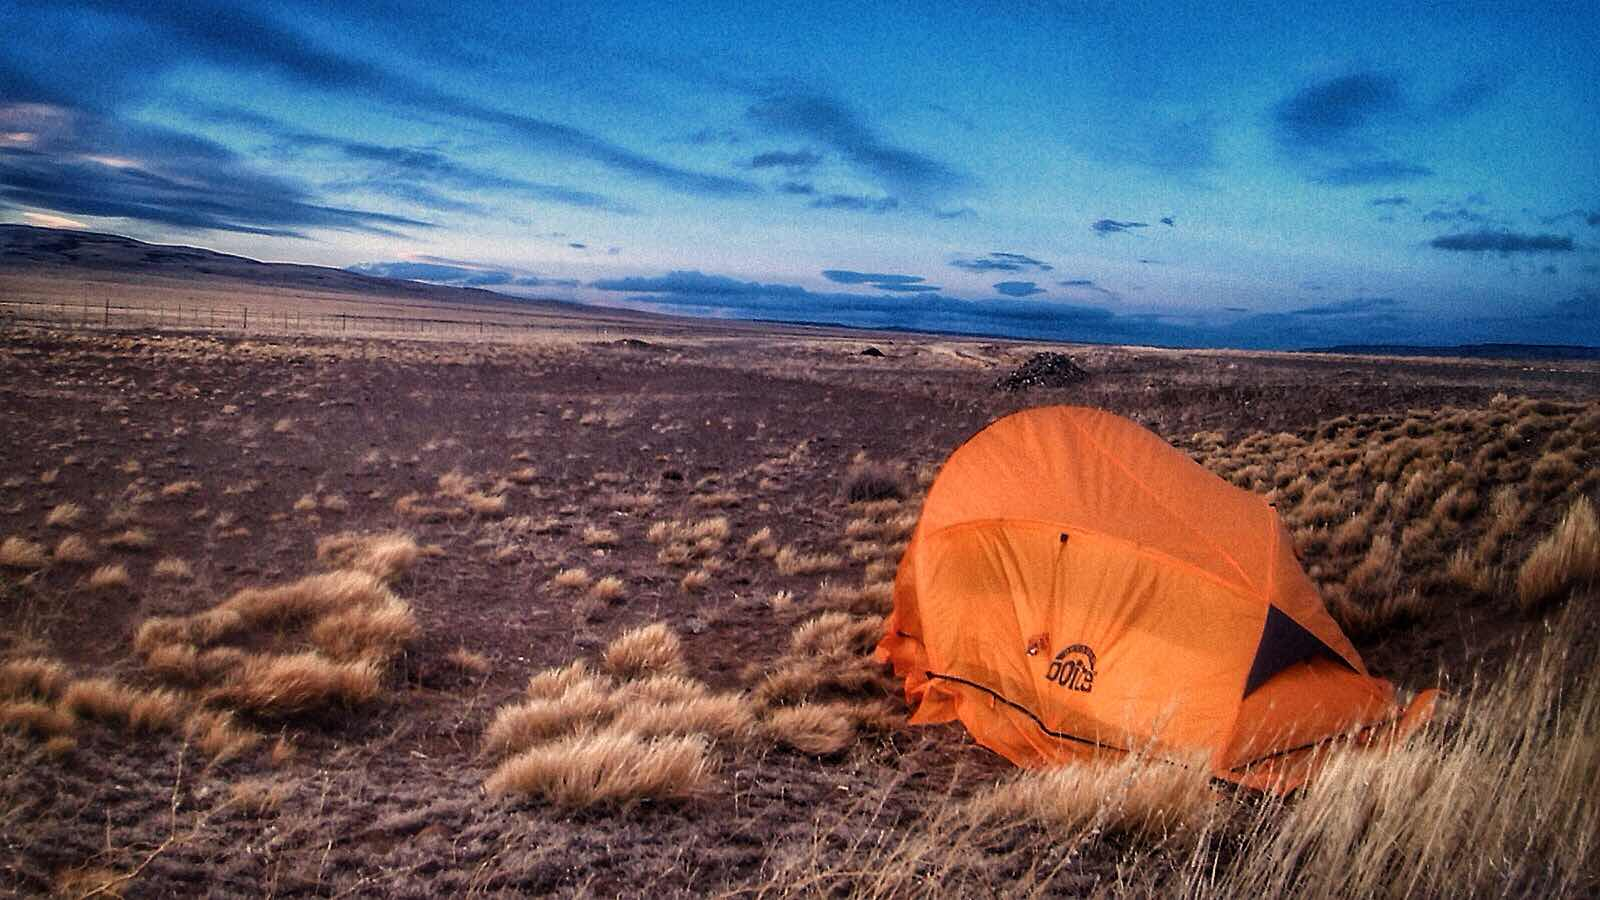 Pampas camping in Patagonia Argentina